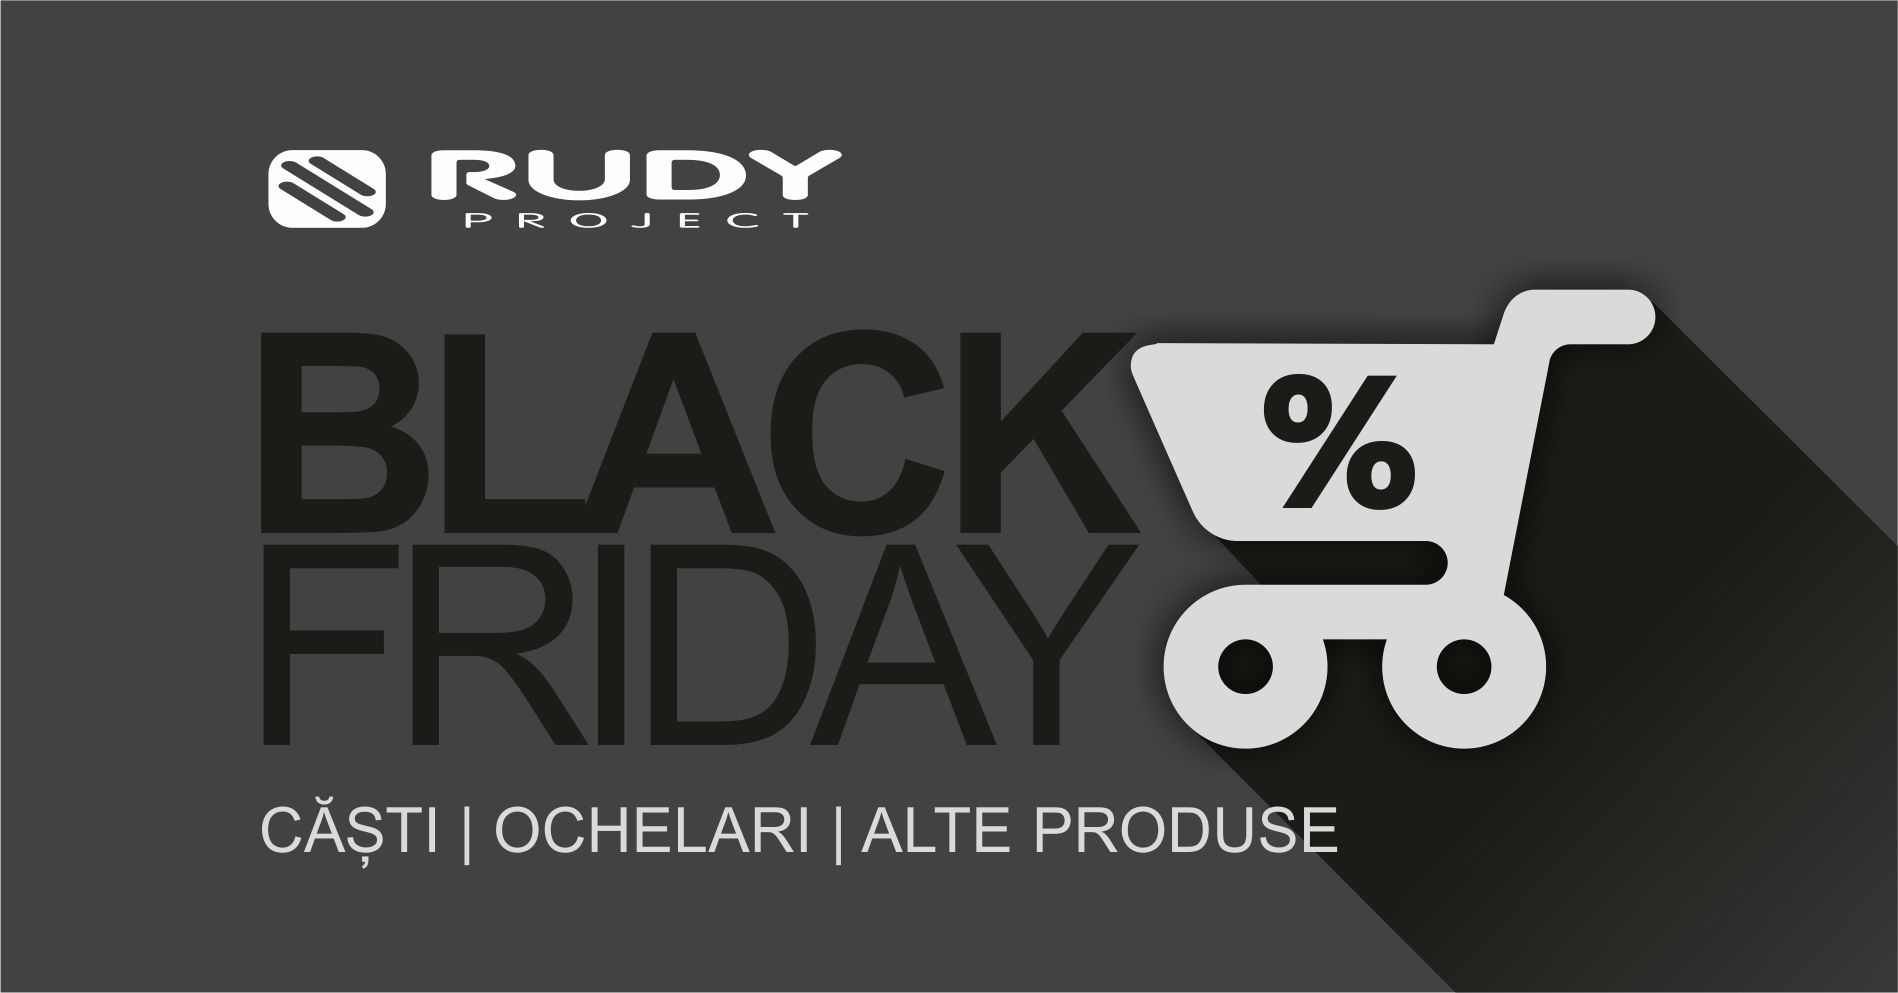 Rudy Project - Black Friday 2018